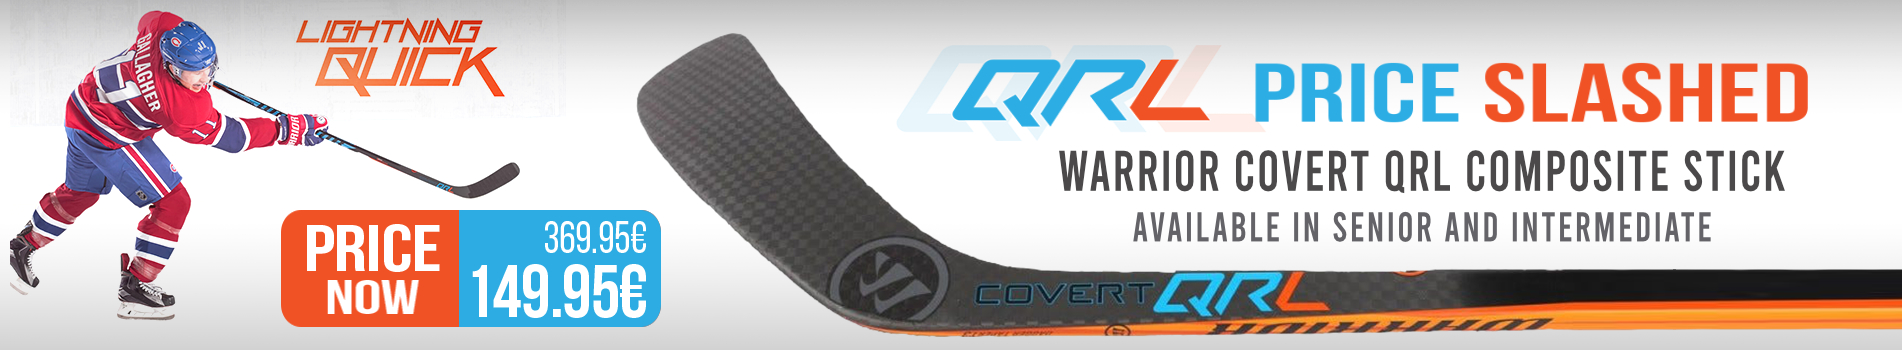 Warrior QRL Pro Stick Sale